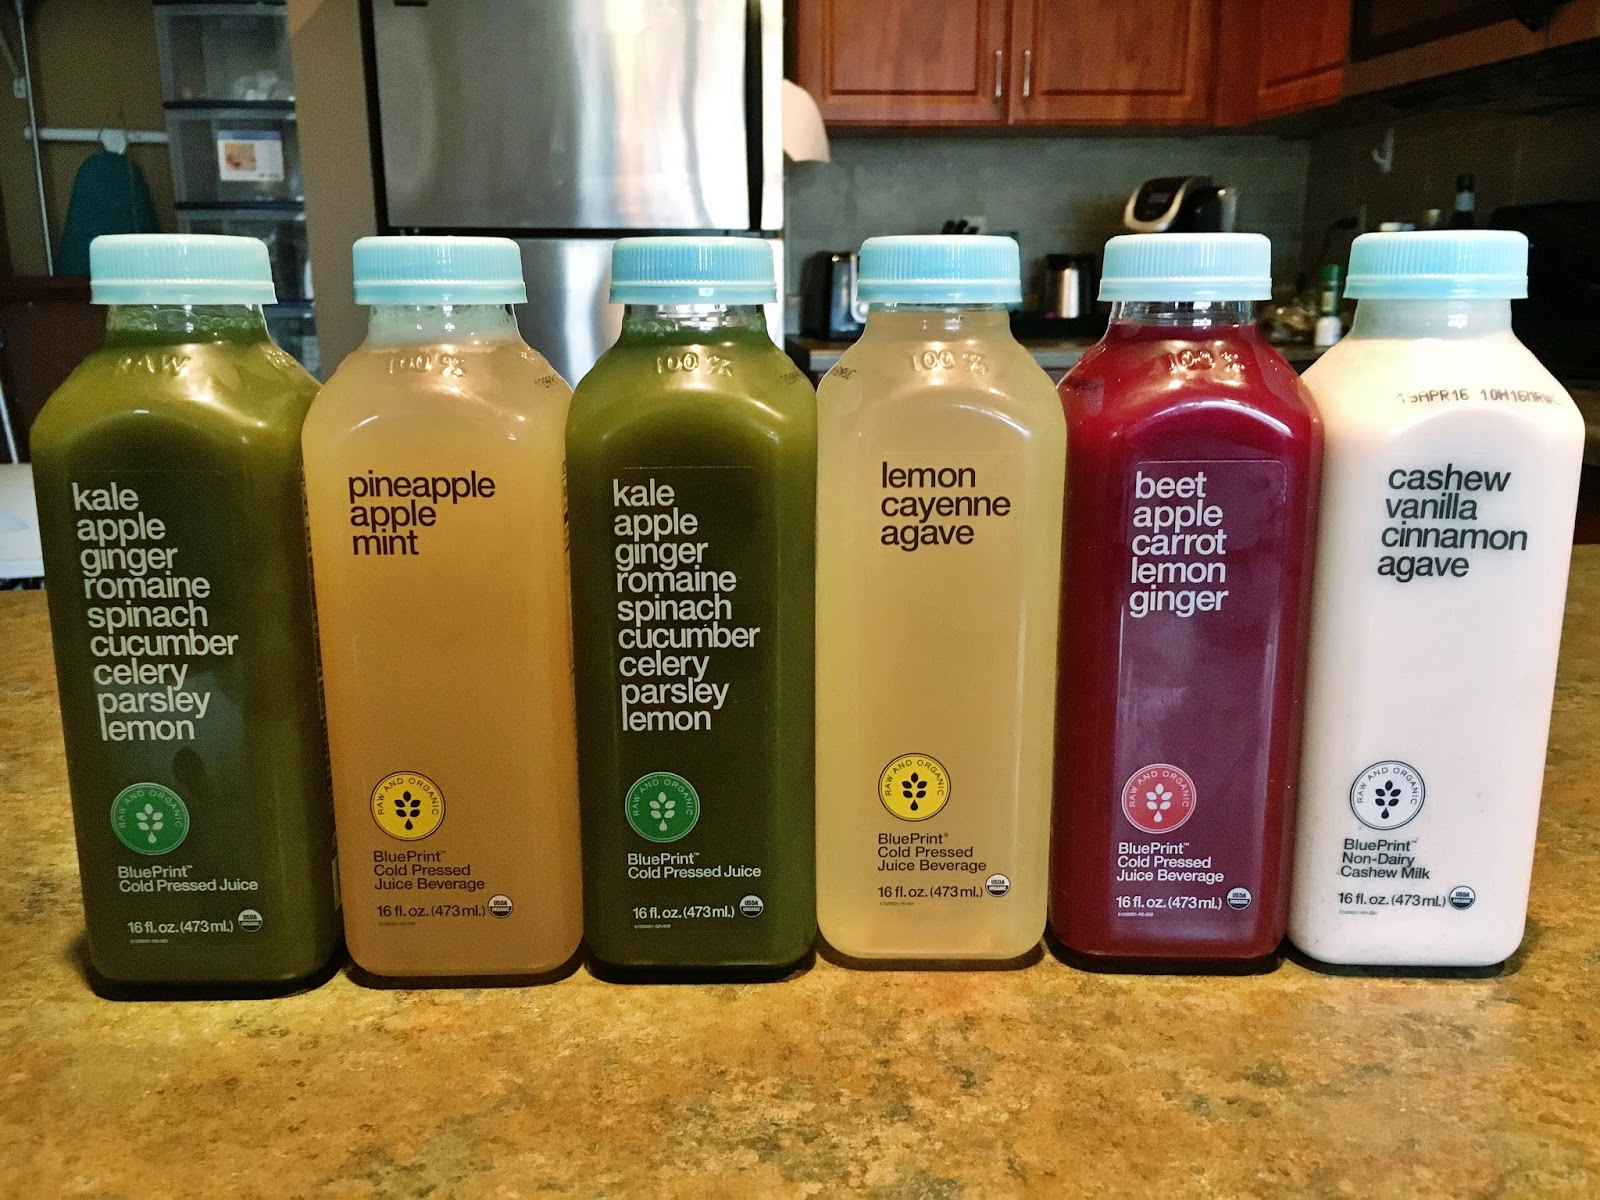 Blueprint juice cleanse an honest review marin olivia so long story short when you eat only mexican food for a week its great while youre there you think to yourself wow i could really get used to all malvernweather Image collections